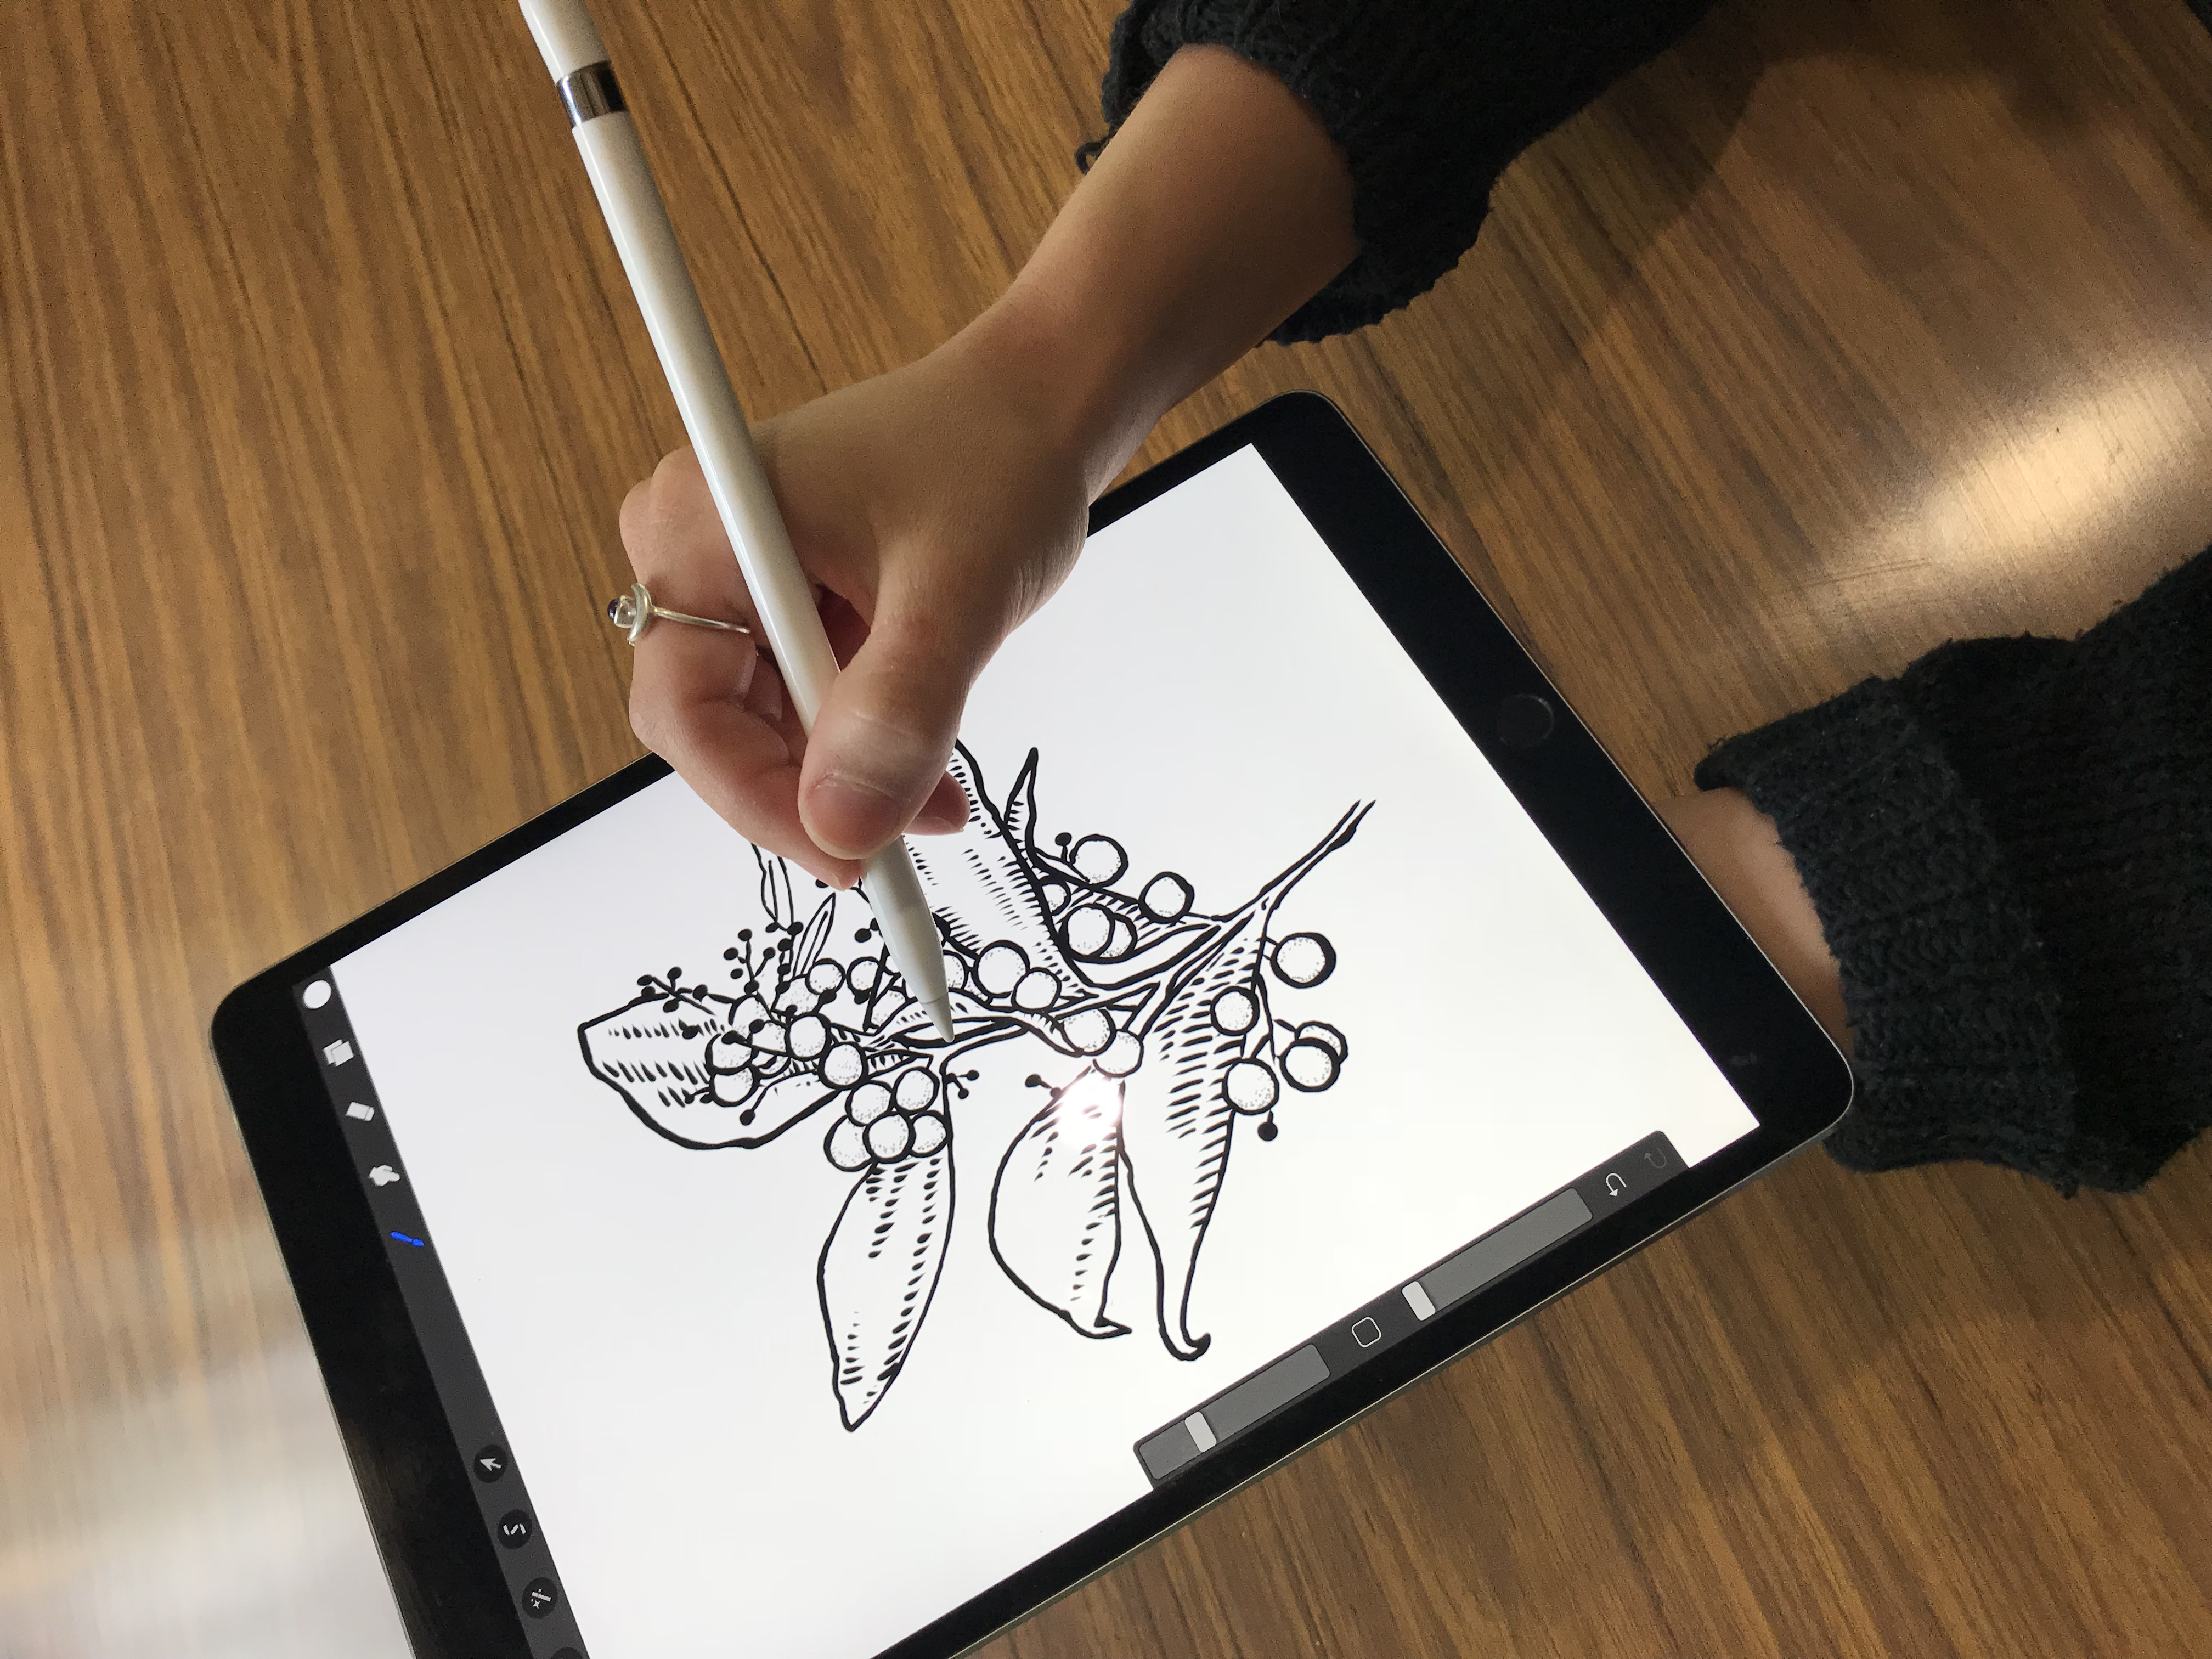 IPad Pro Digital Drawing Workshop Tickets - The Adelaide College Of The Arts On January 15 2018 ...